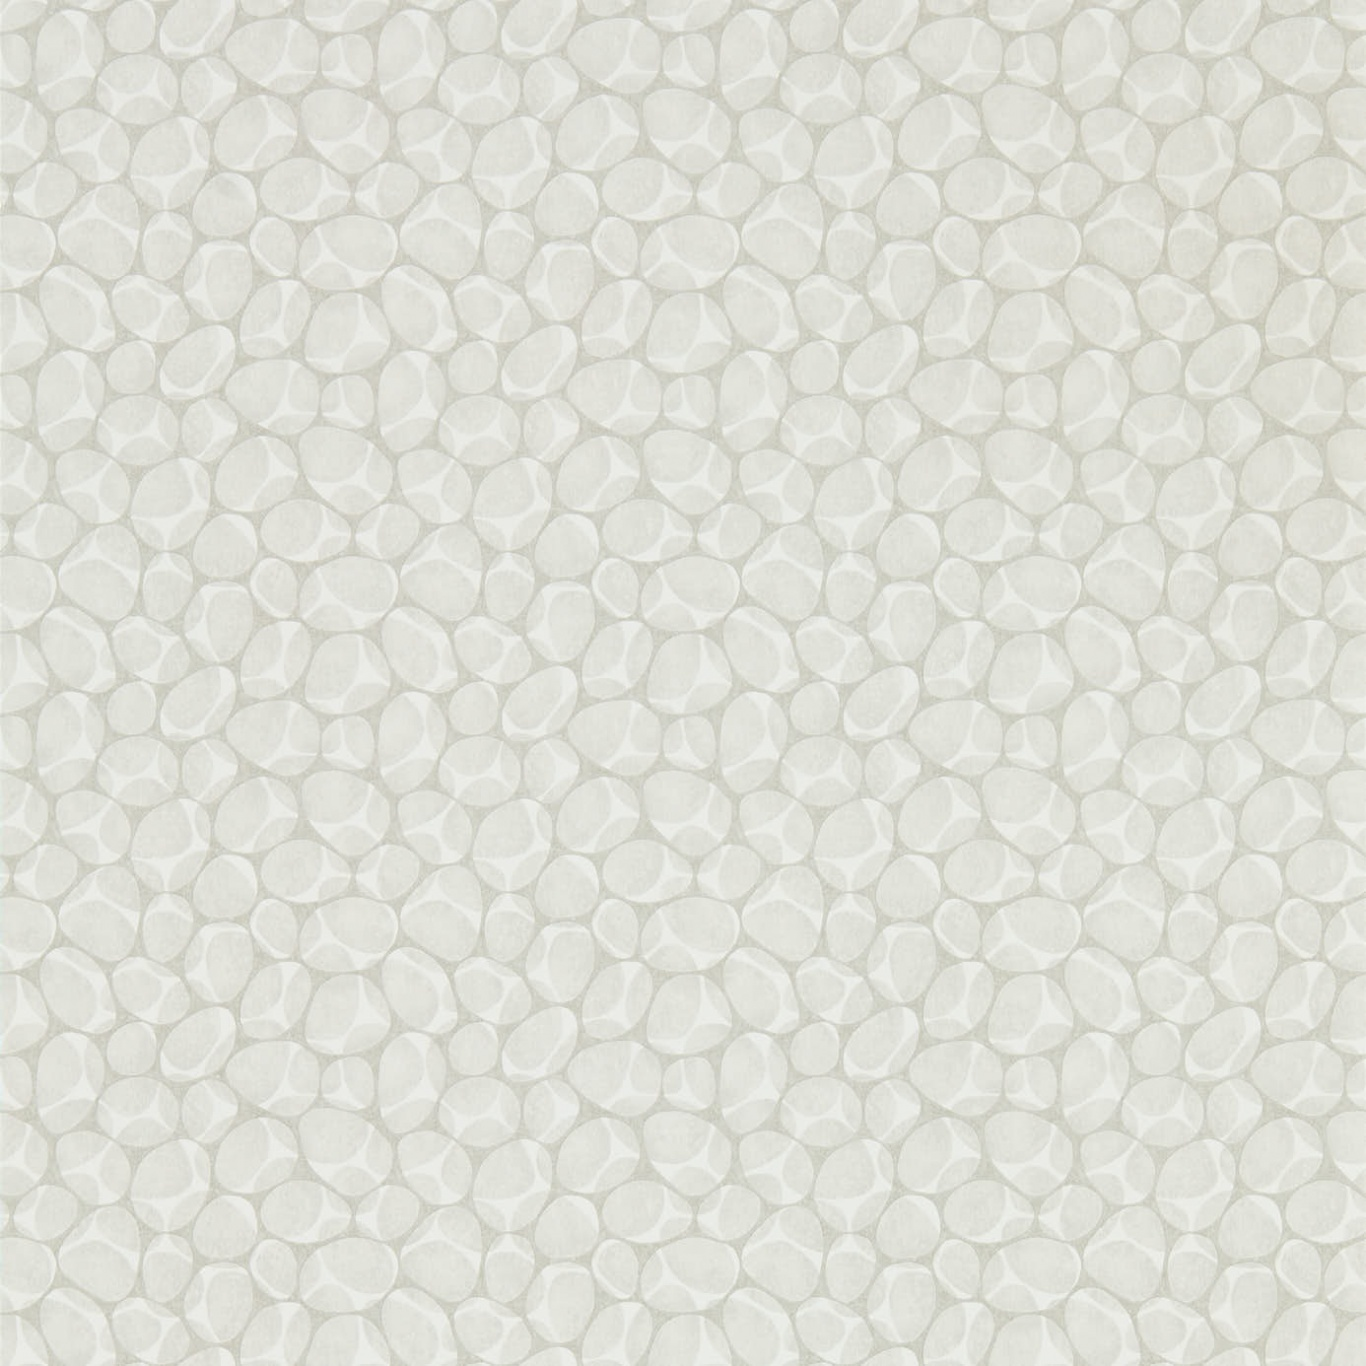 Image of Sanderson Home Cobble Gull Wallpaper 216582